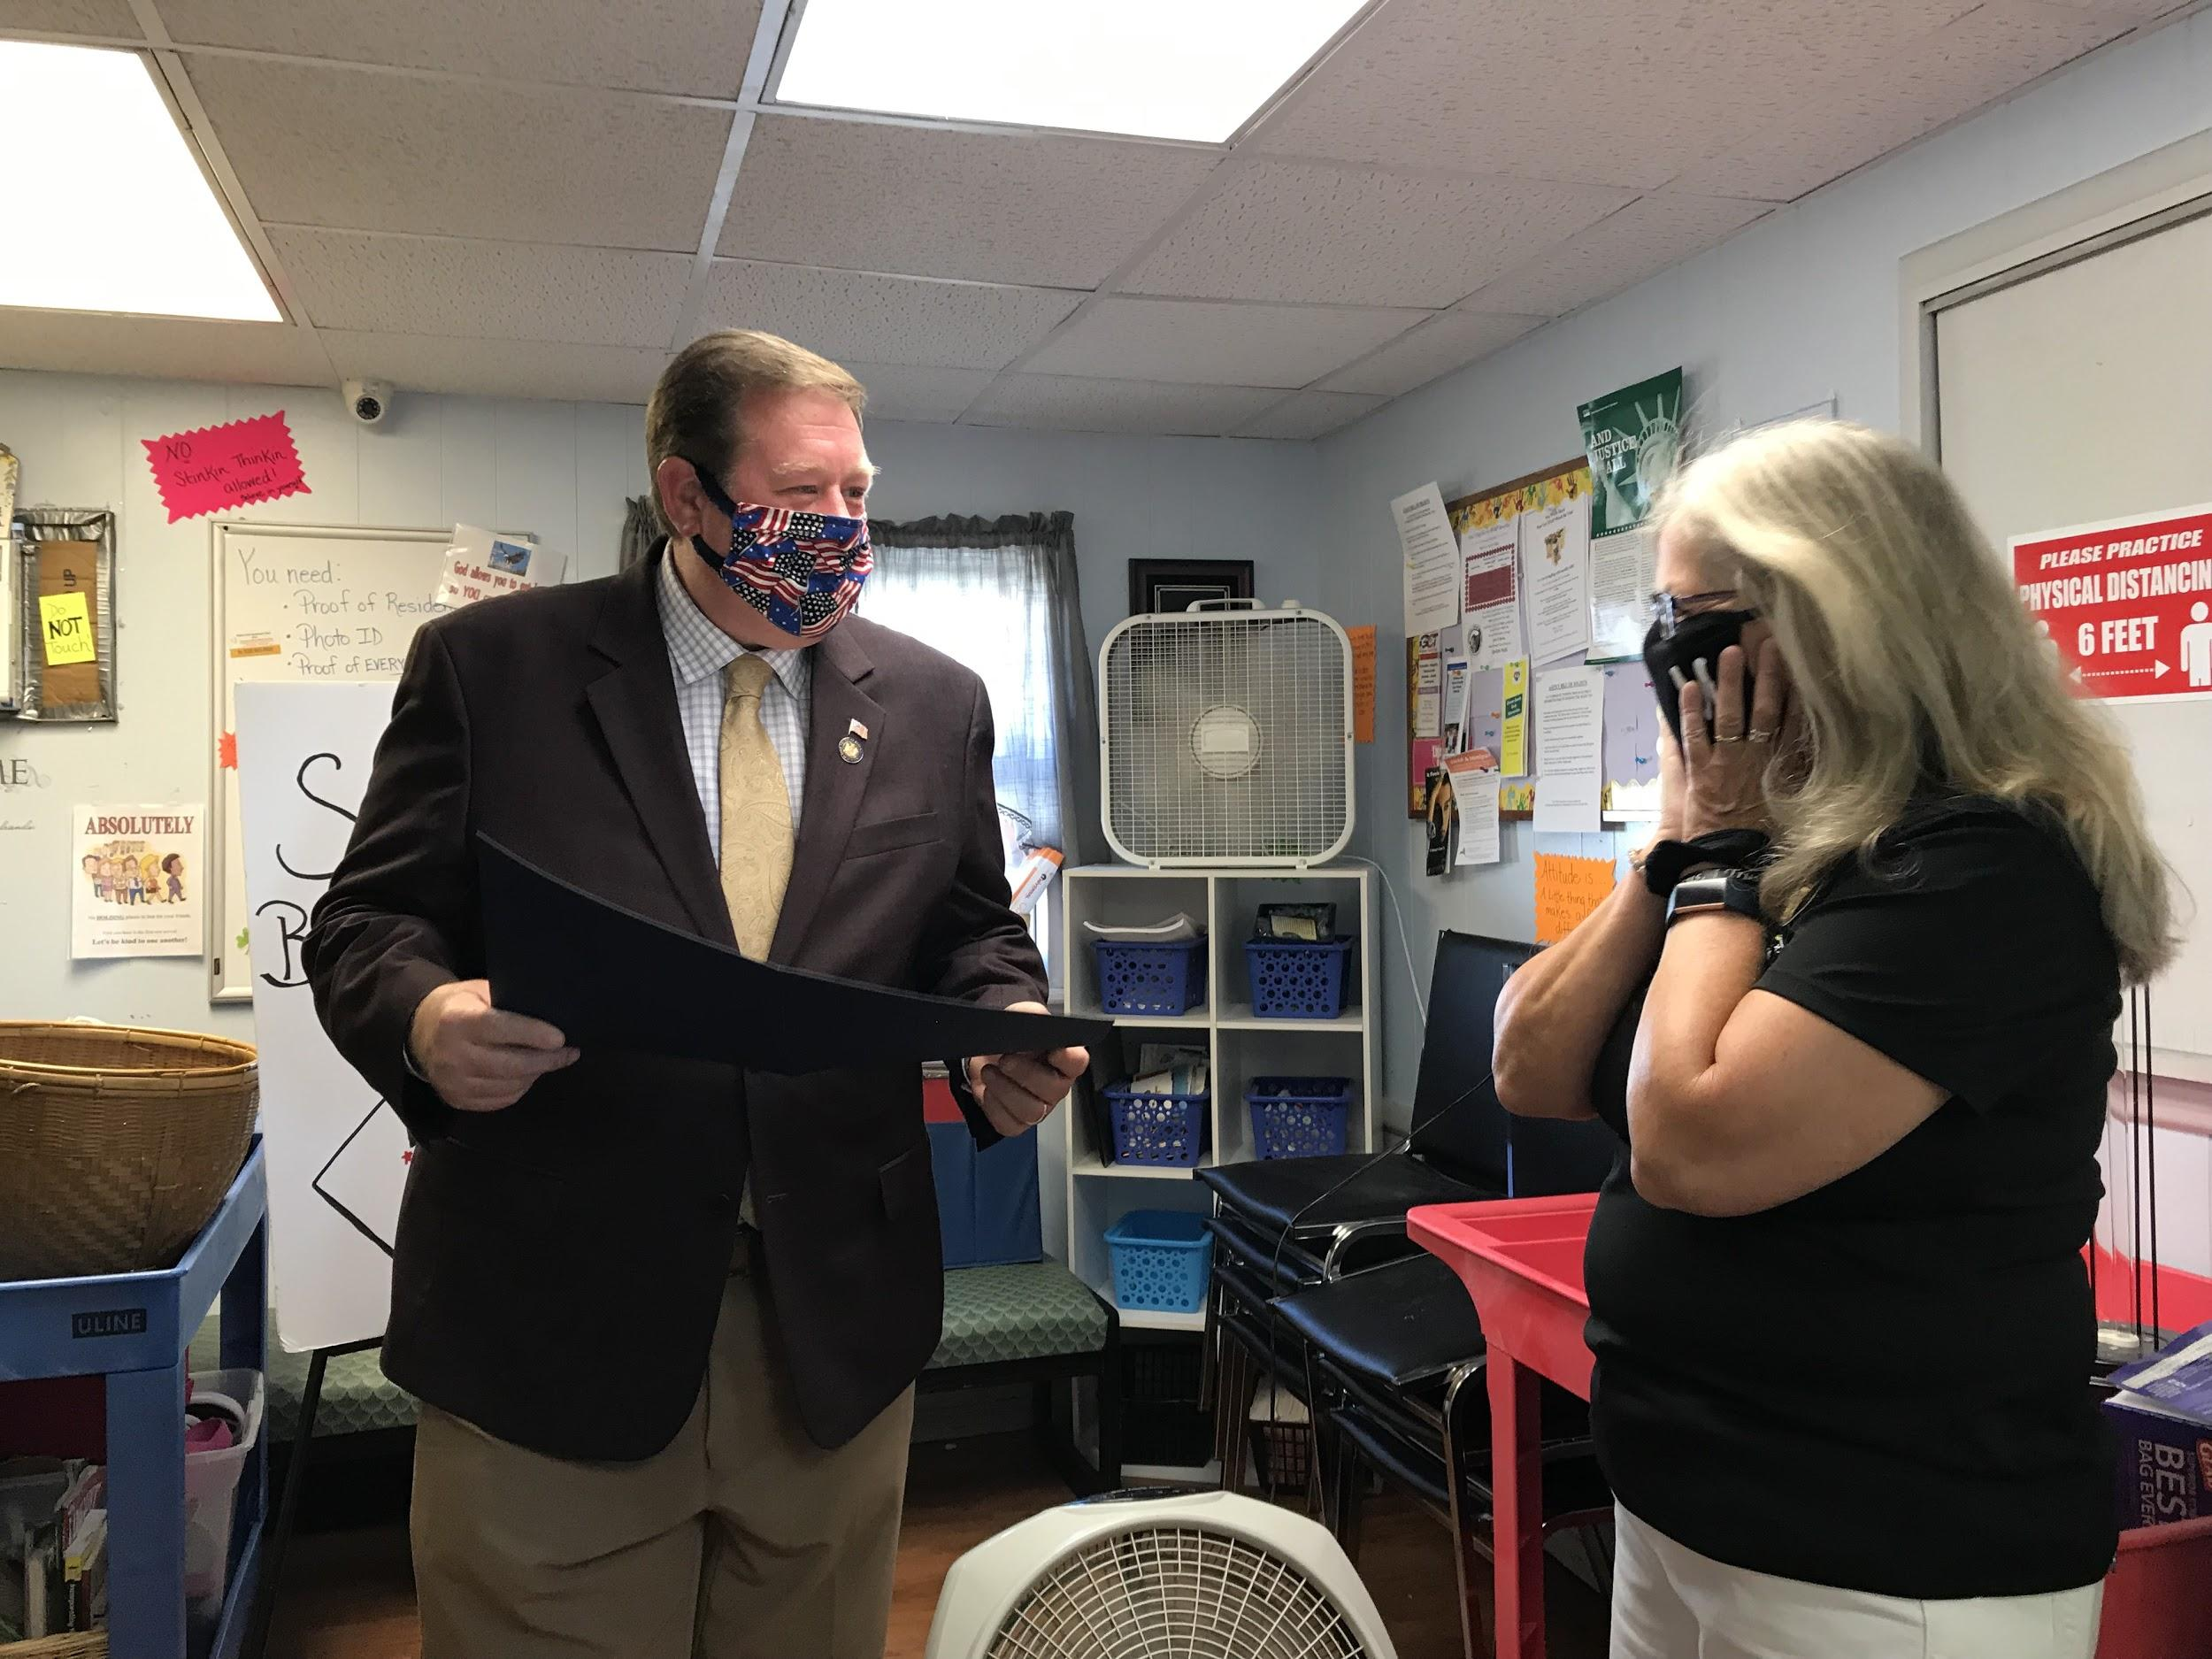 Assemblyman Chris Tague (R,C,I,Ref-Schoharie) presents Patti Dushane with legislative resolution on Wednesday, August 5th.